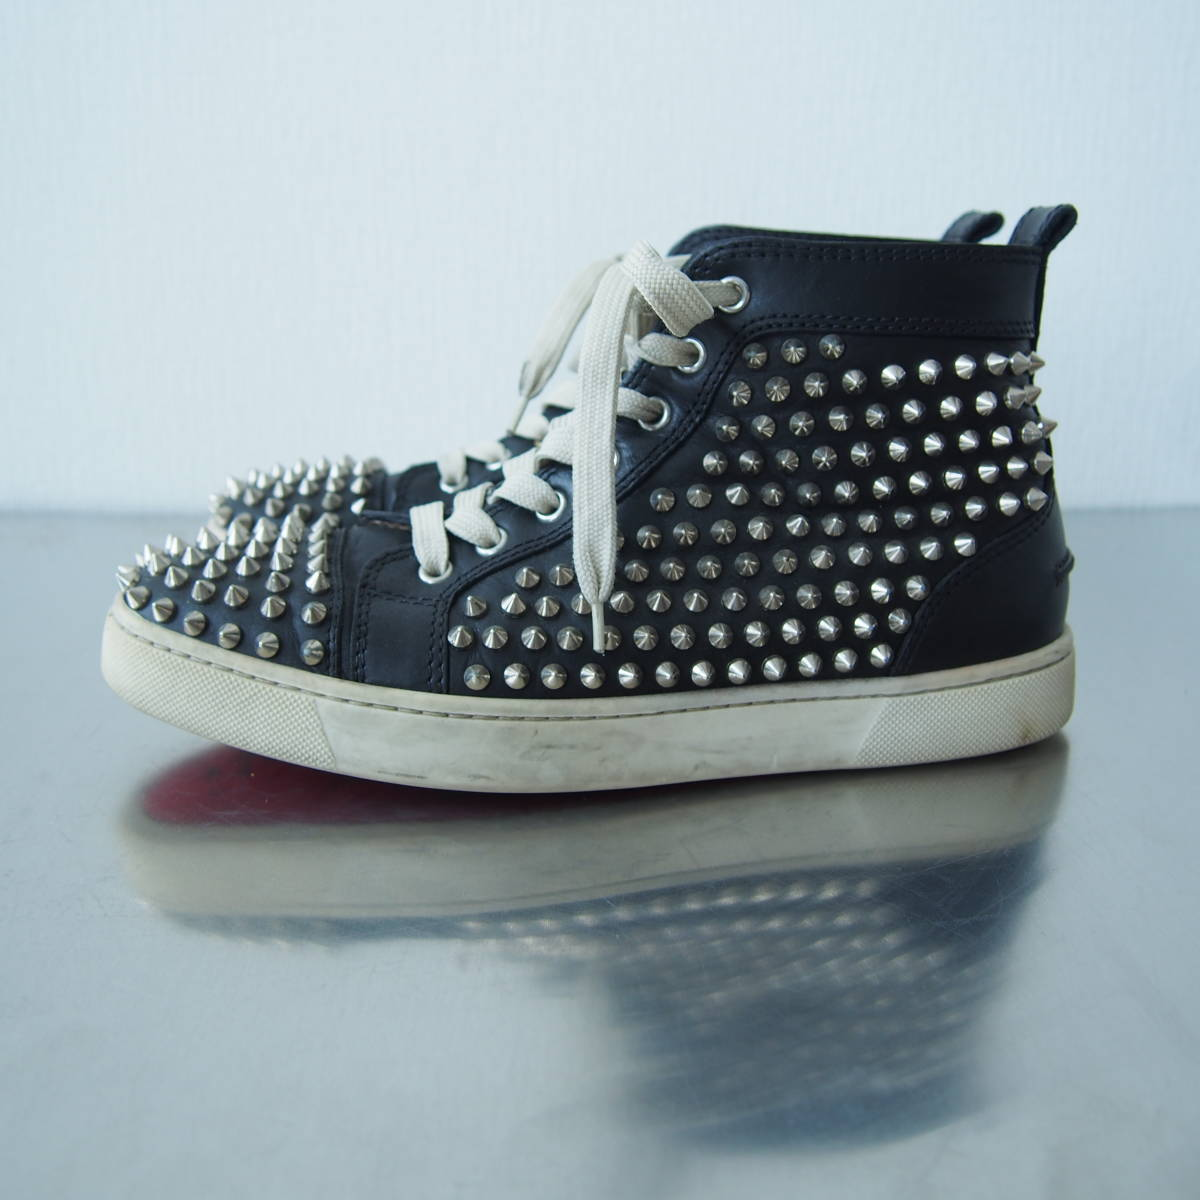 5f6941fccc9 中古 Christian Louboutin size 40 25cm LOUIS FLAT CALF/SPIKES クリスチャン ルブタン